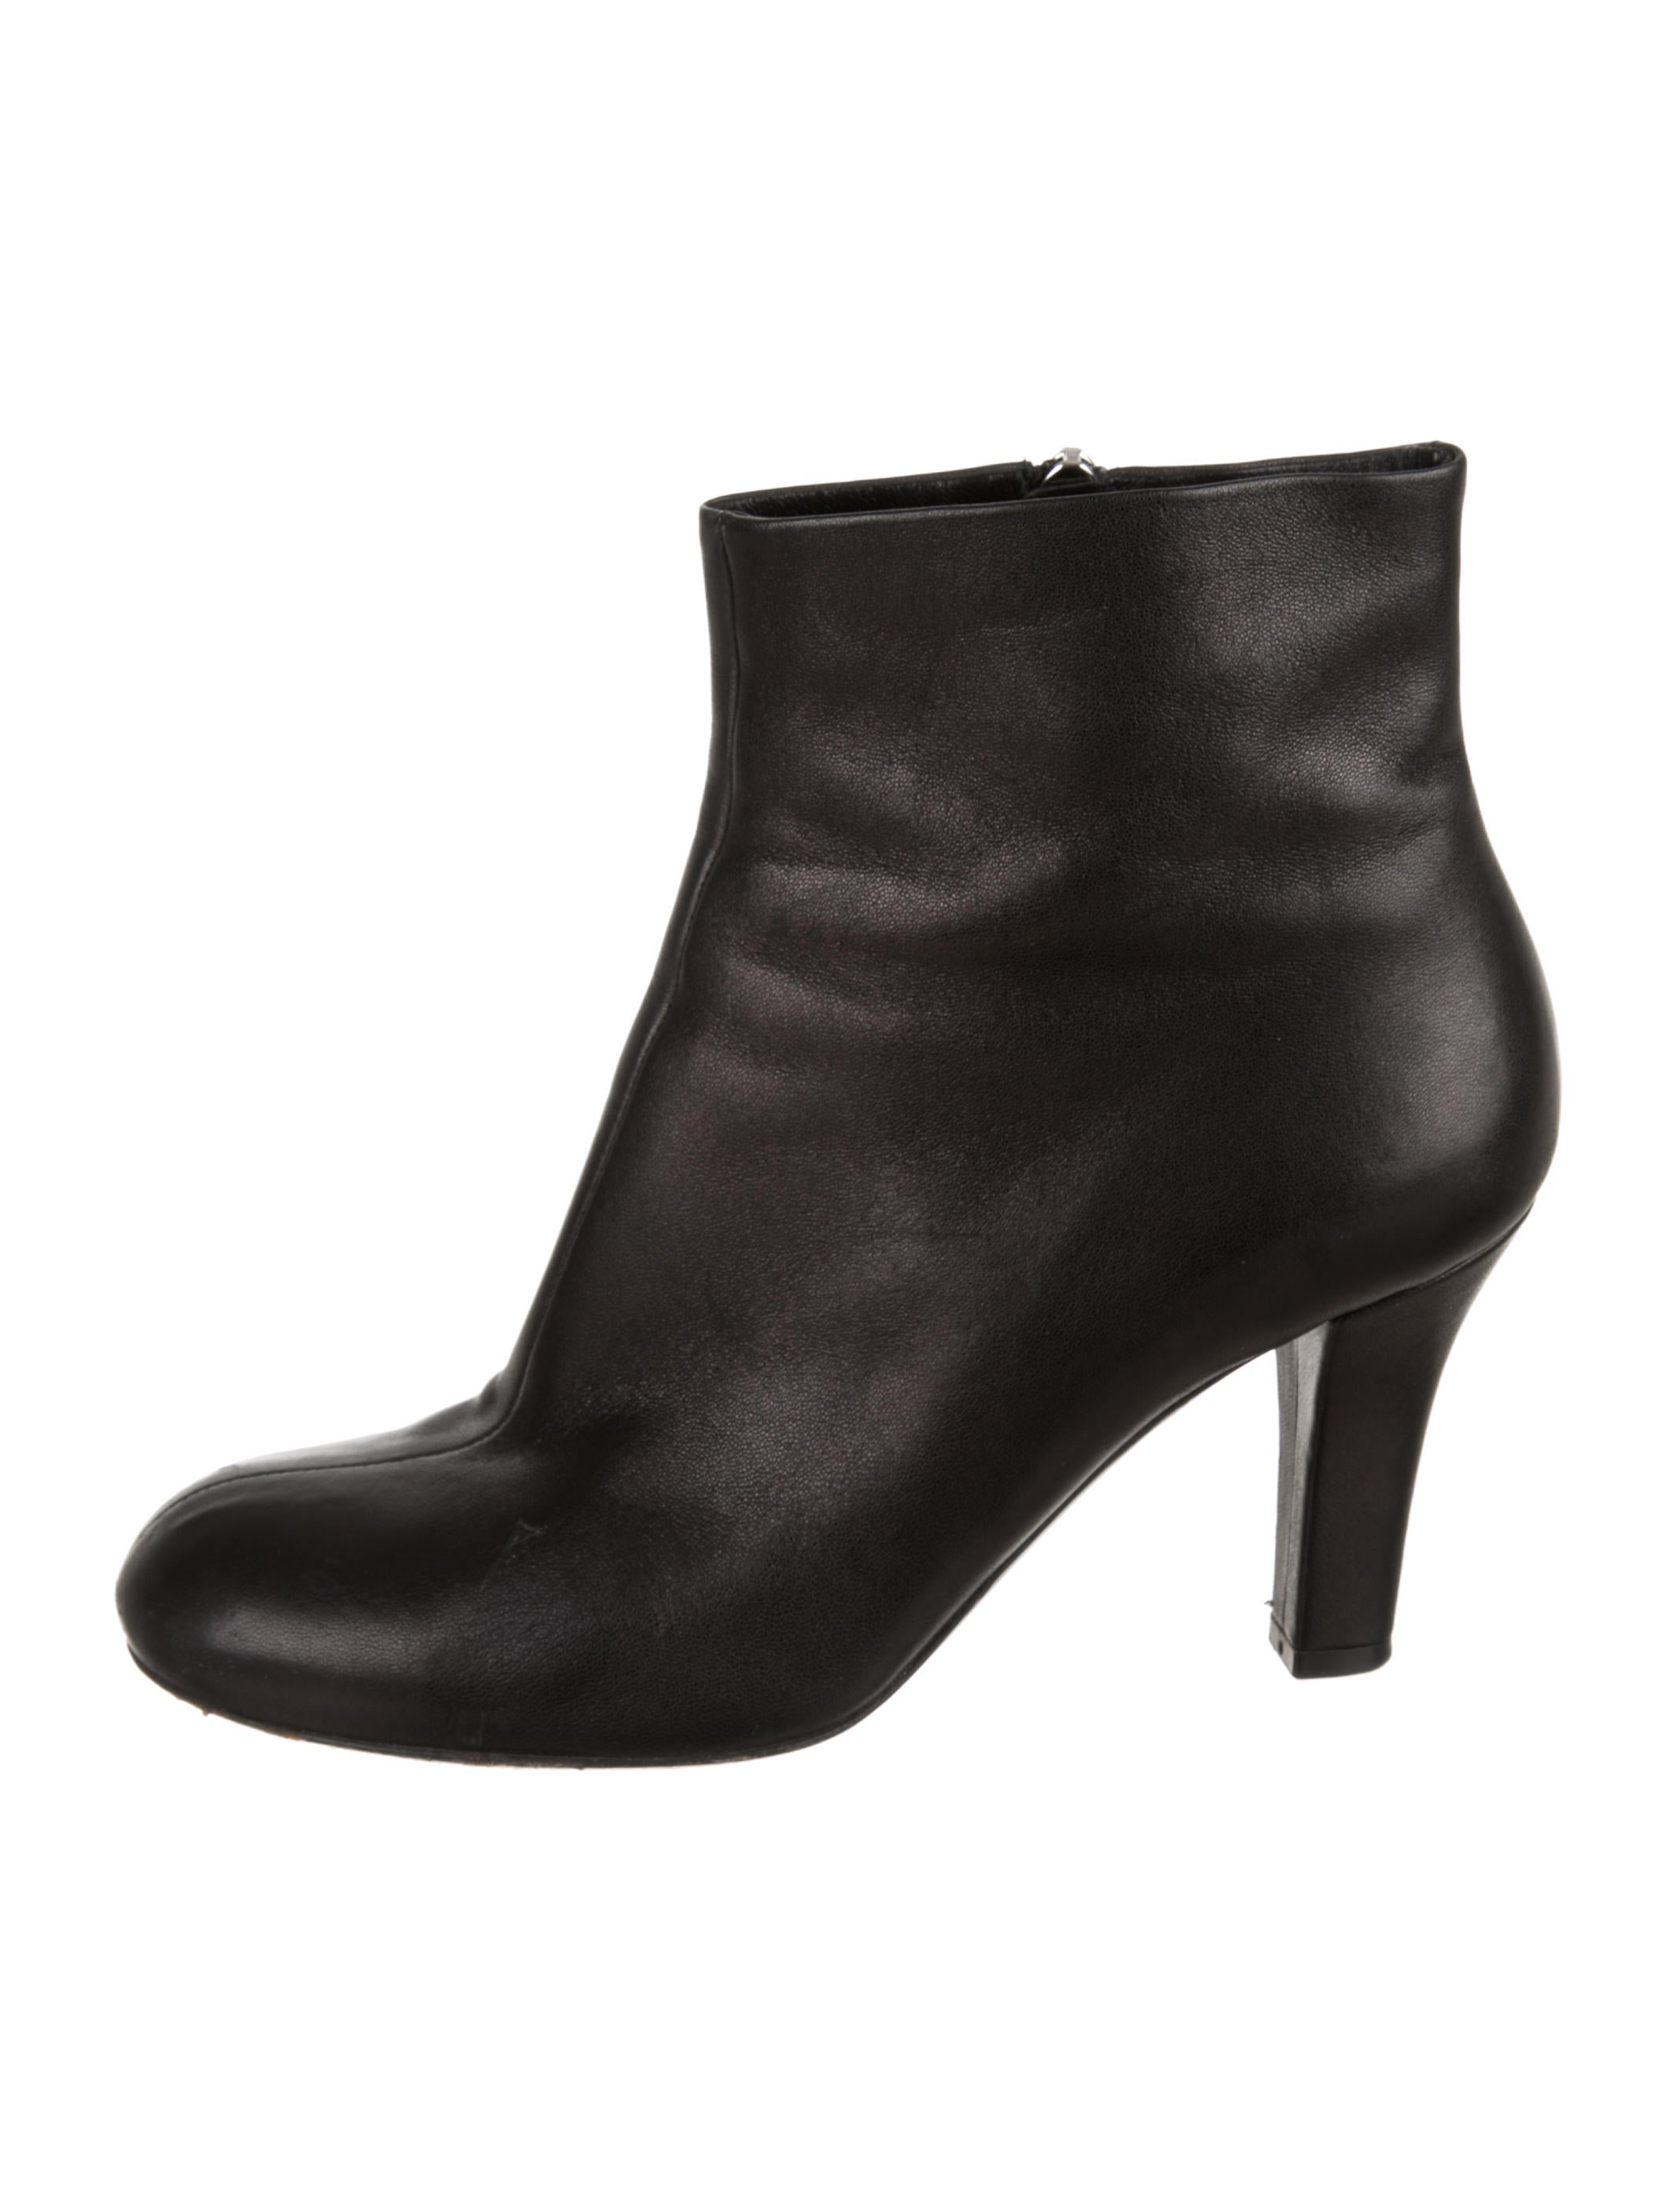 8049ae0cd Gucci Leather Round-Toe Boots - Shoes - GUC236140 | The RealReal